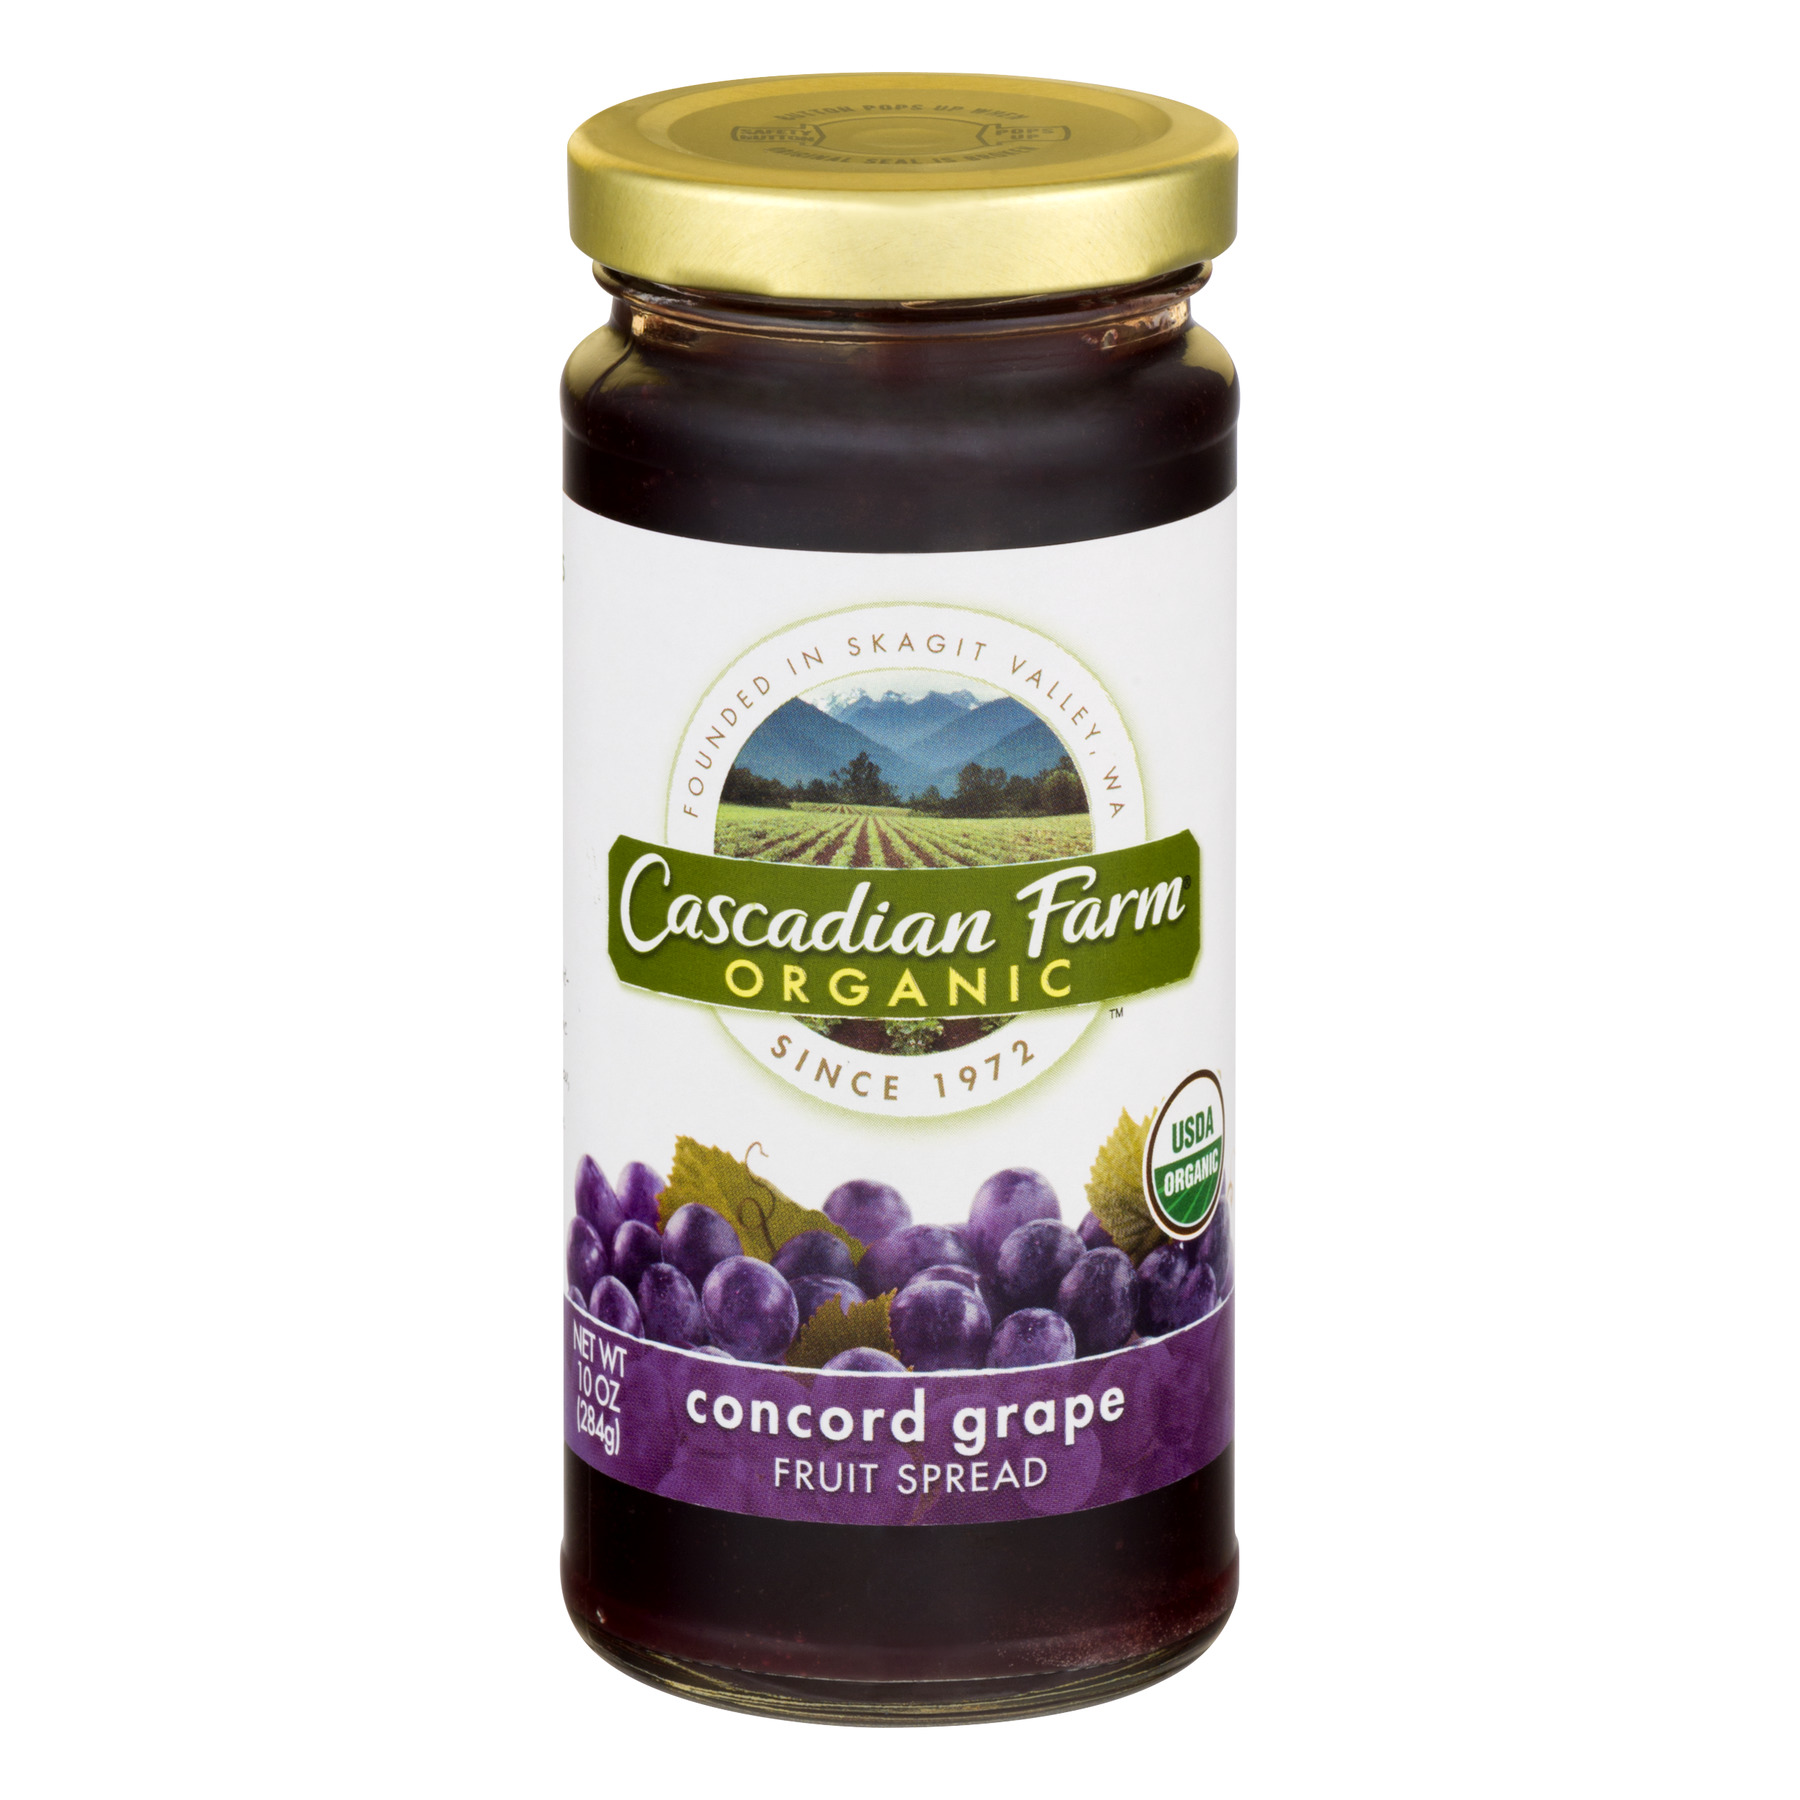 Cascadian Farm® Concord Grape Fruit Spread, 10 oz